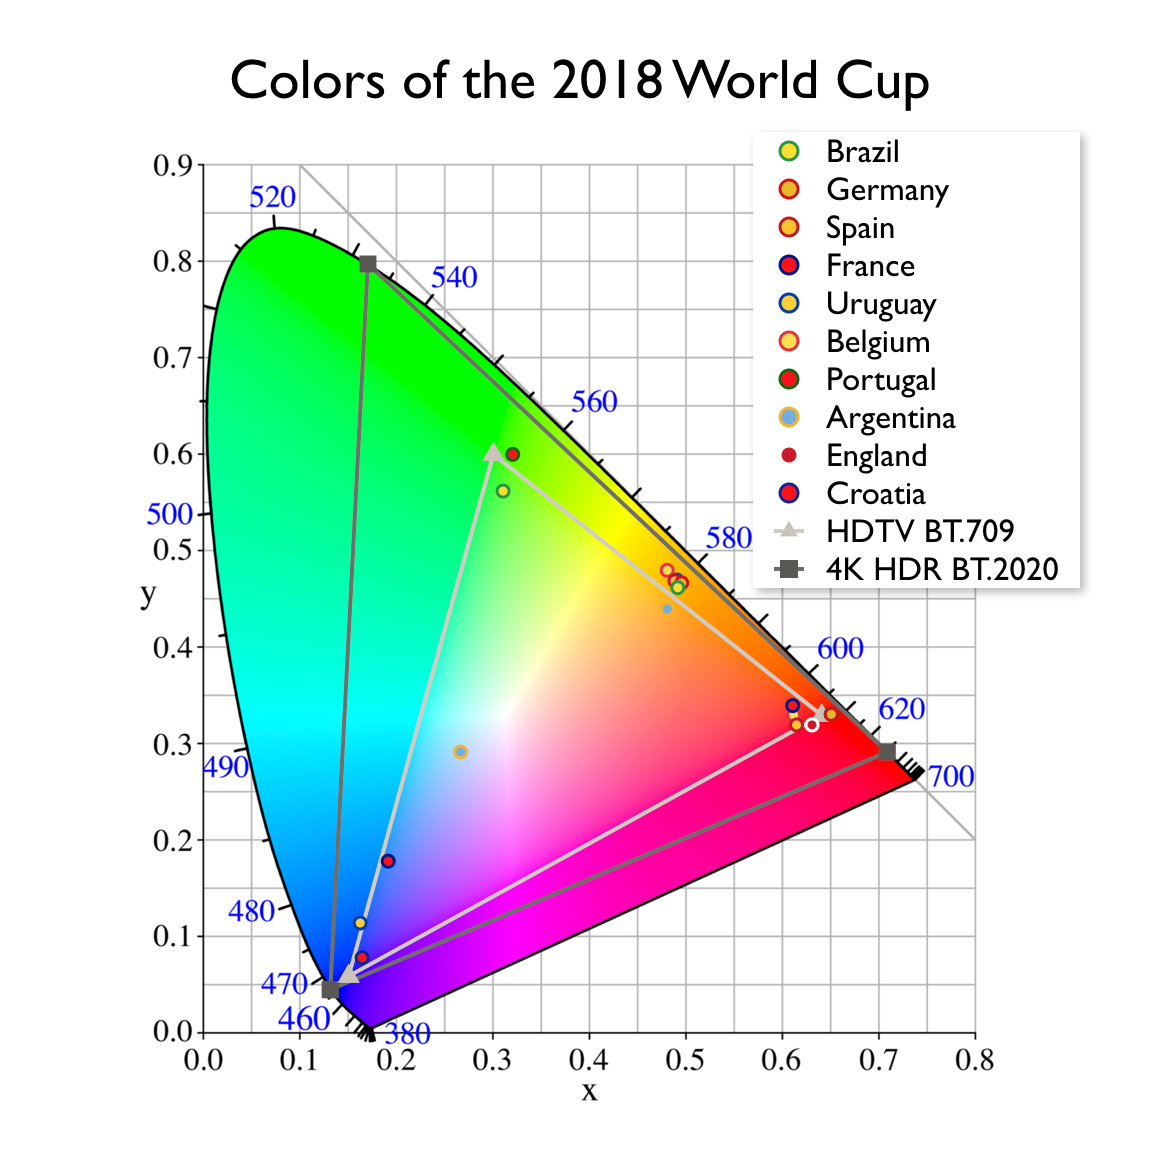 Color gamut of the 2018 World Cup's top 10 countries.